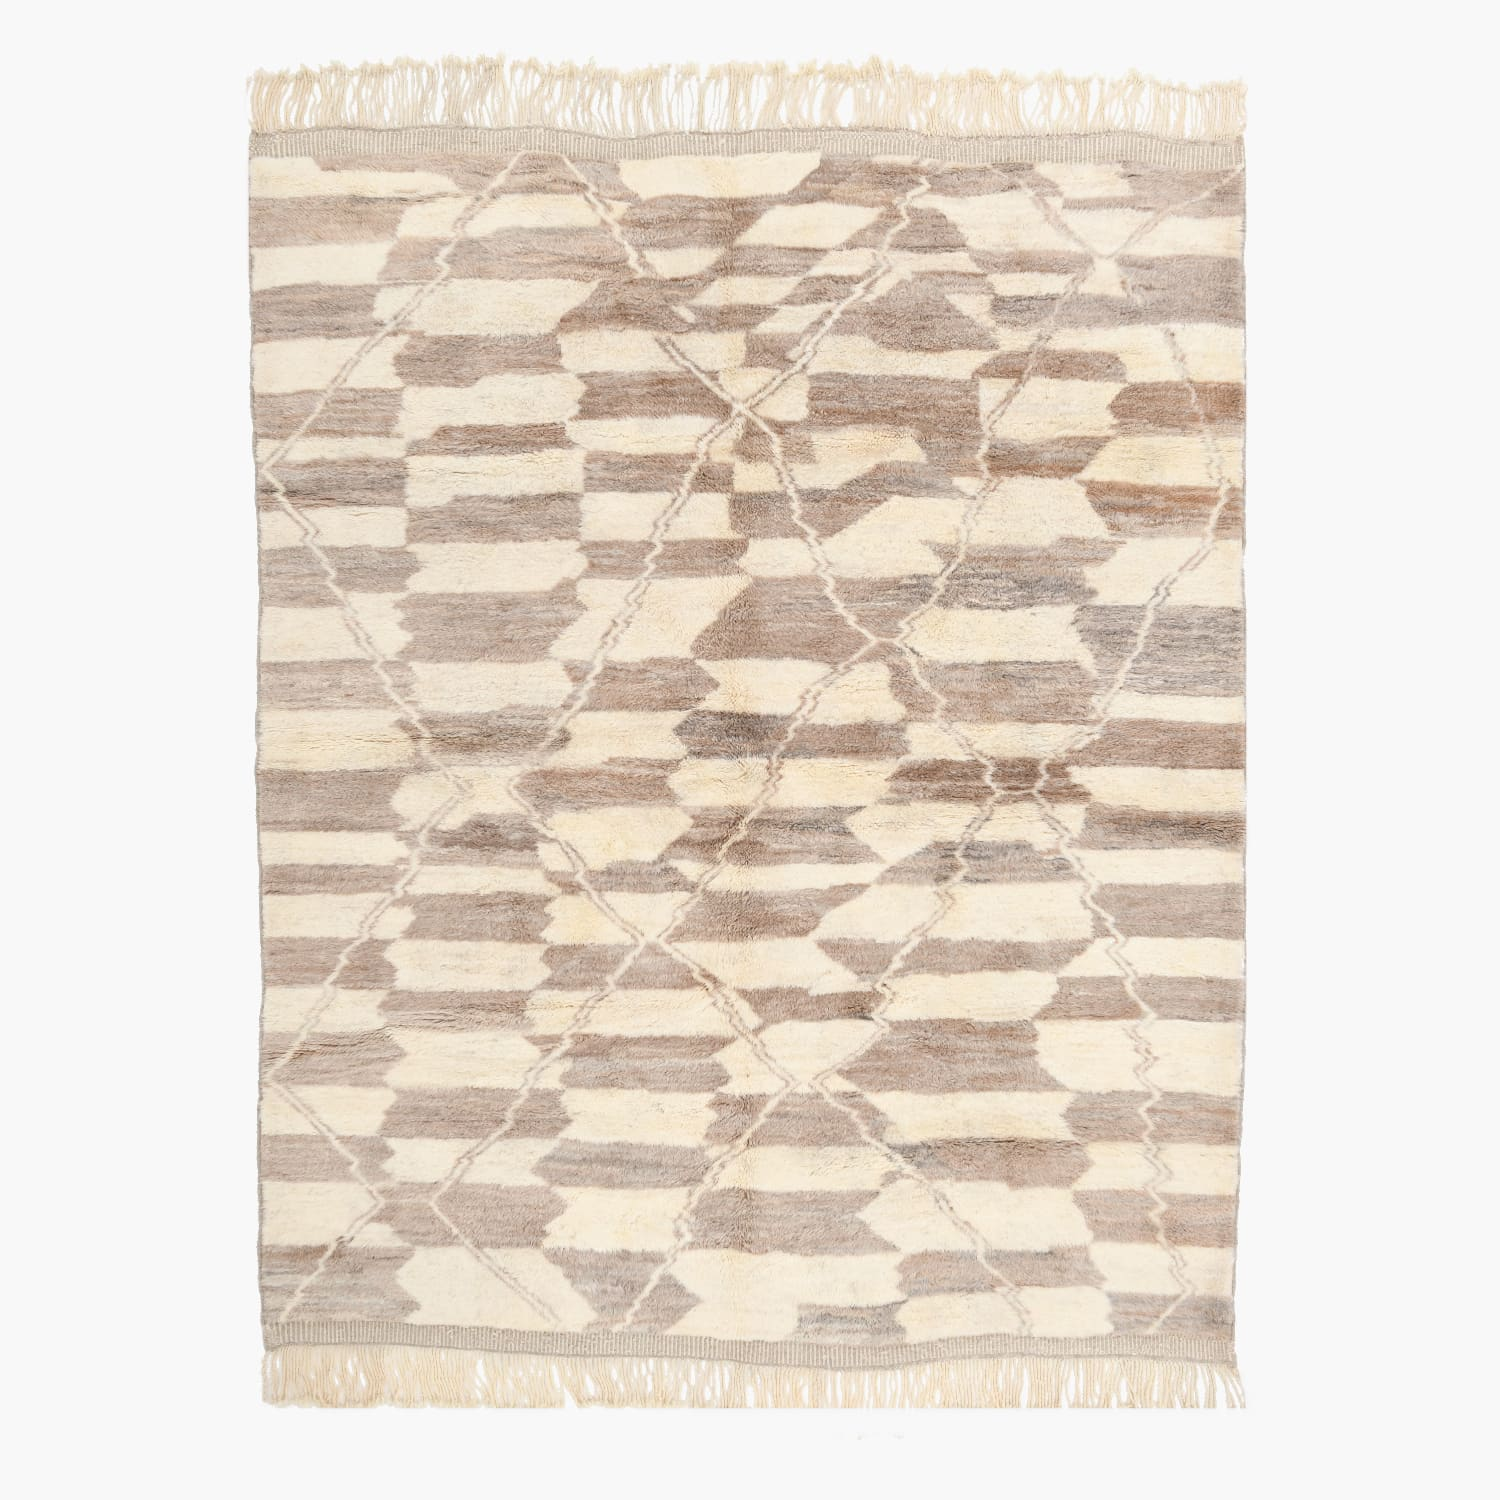 Luxury Mrirt rug 8.3 x 10.1 ft / 253 x 307 cm - Mrirt Rug